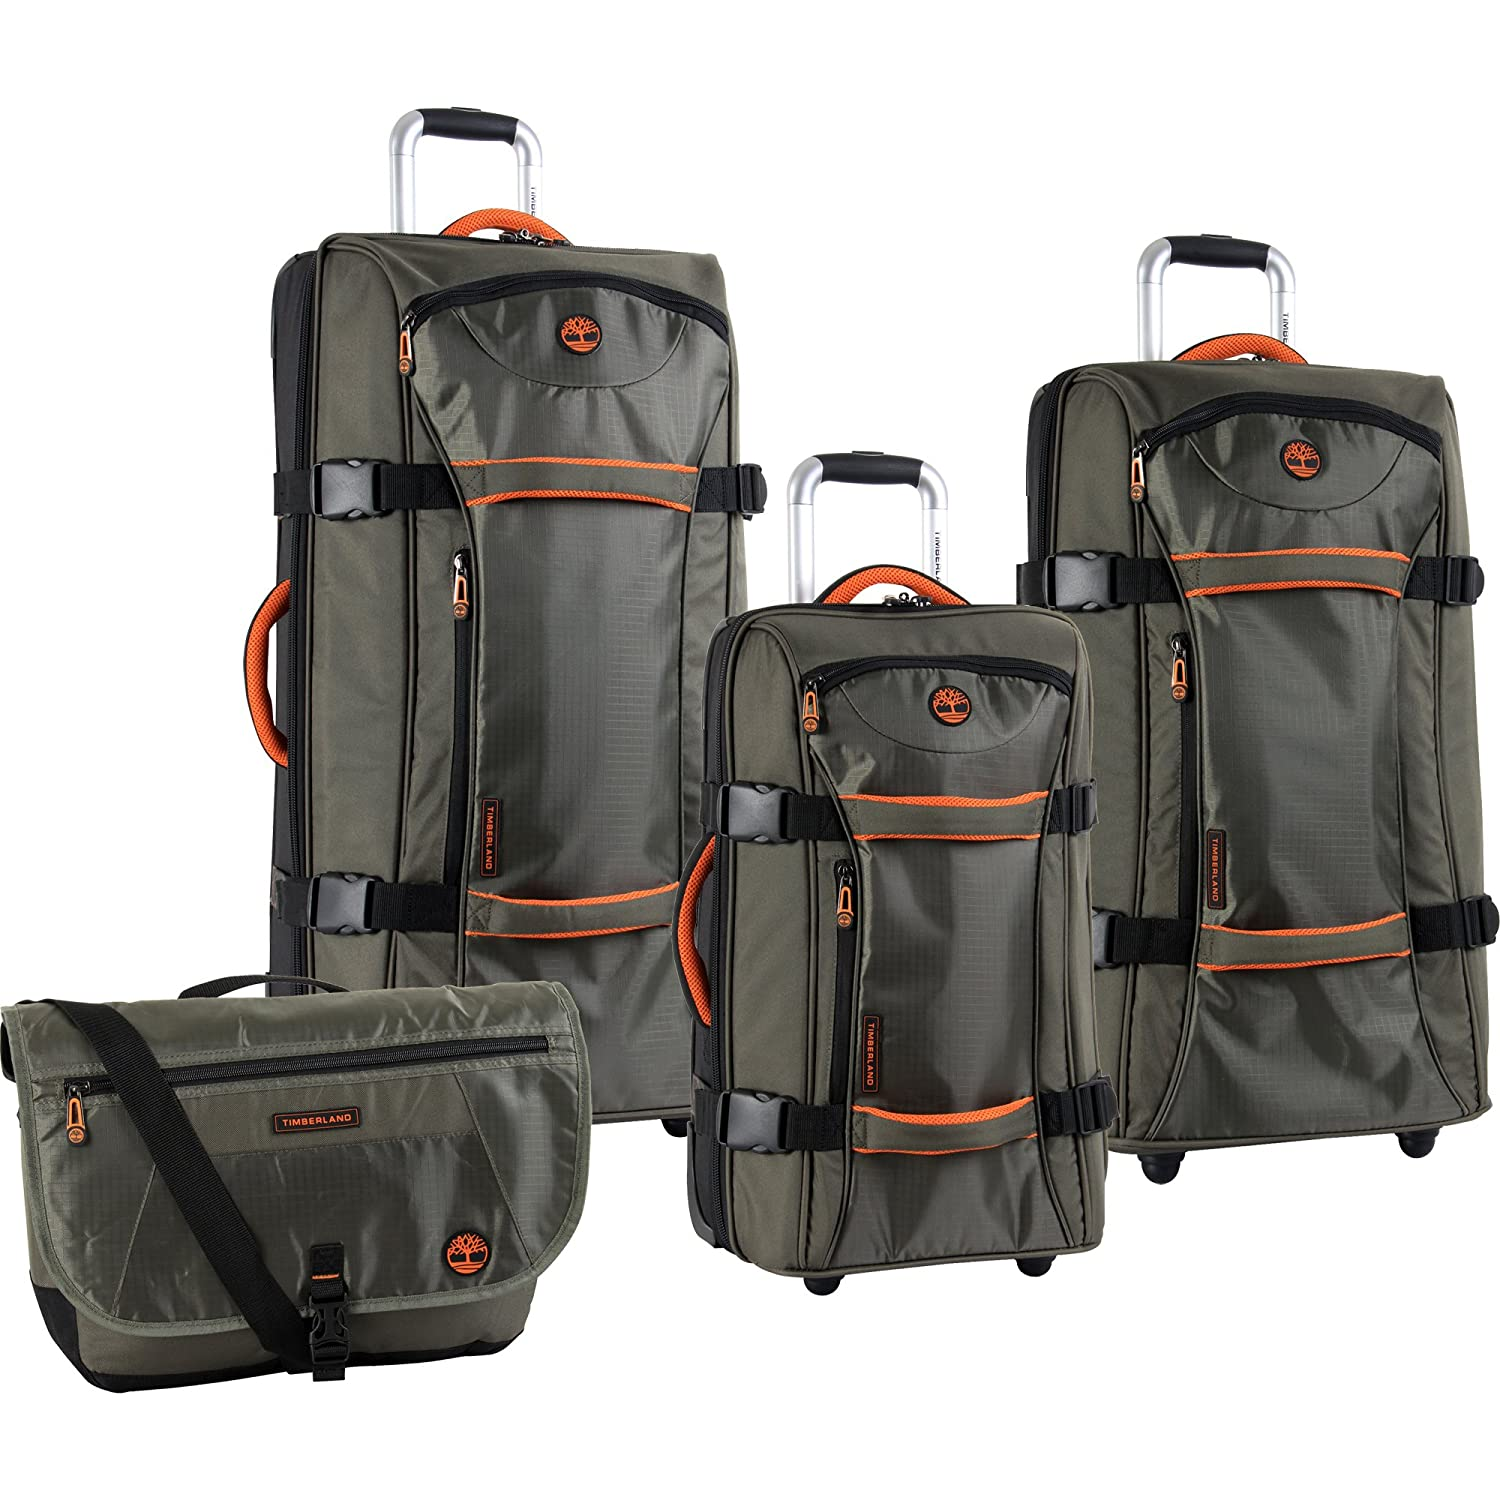 2523b40948 Amazon.com | Timberland Luggage Claremont Three Piece Duffle Set ...